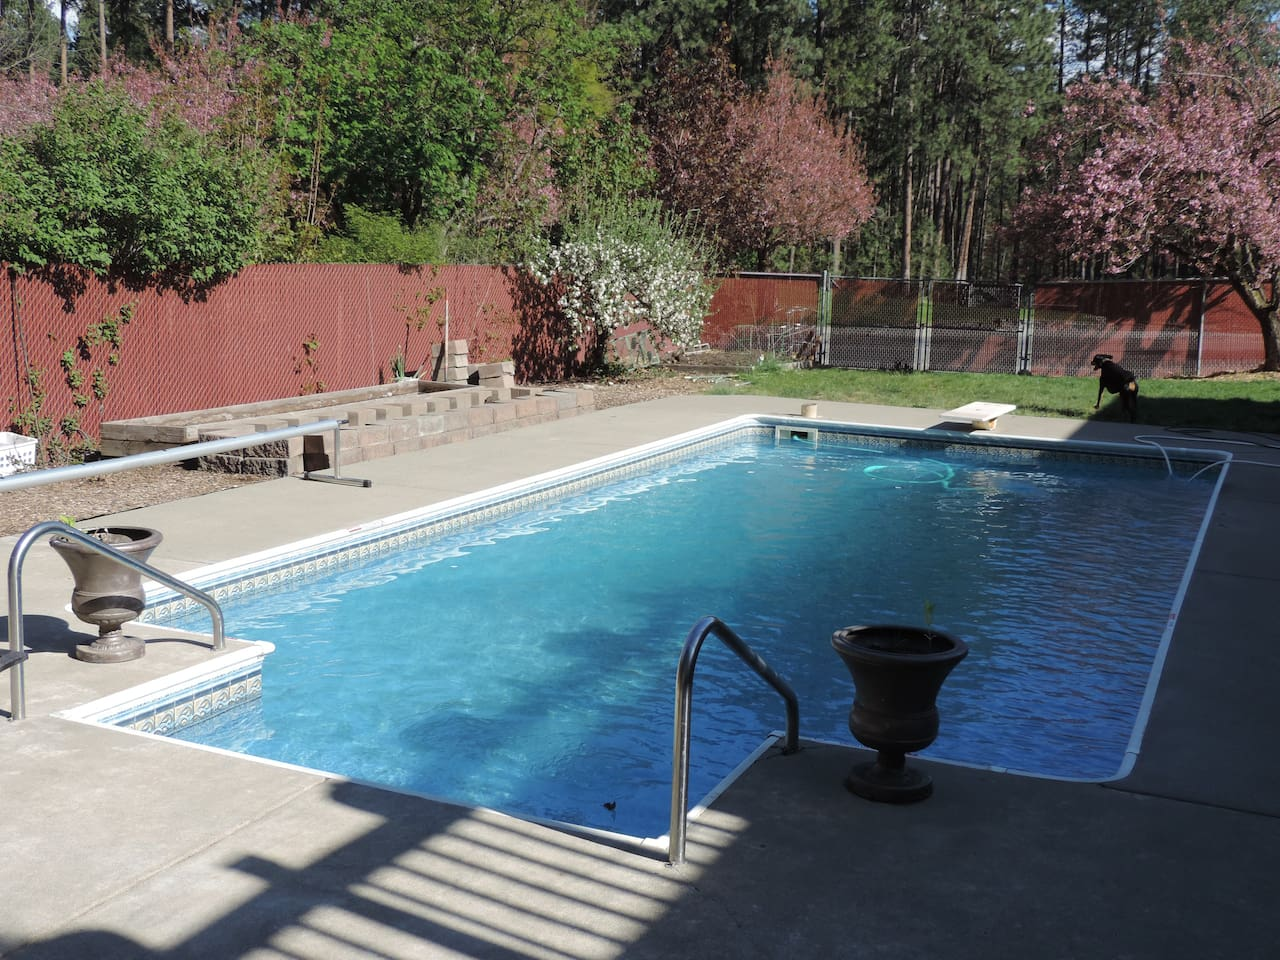 Pool open during summer months